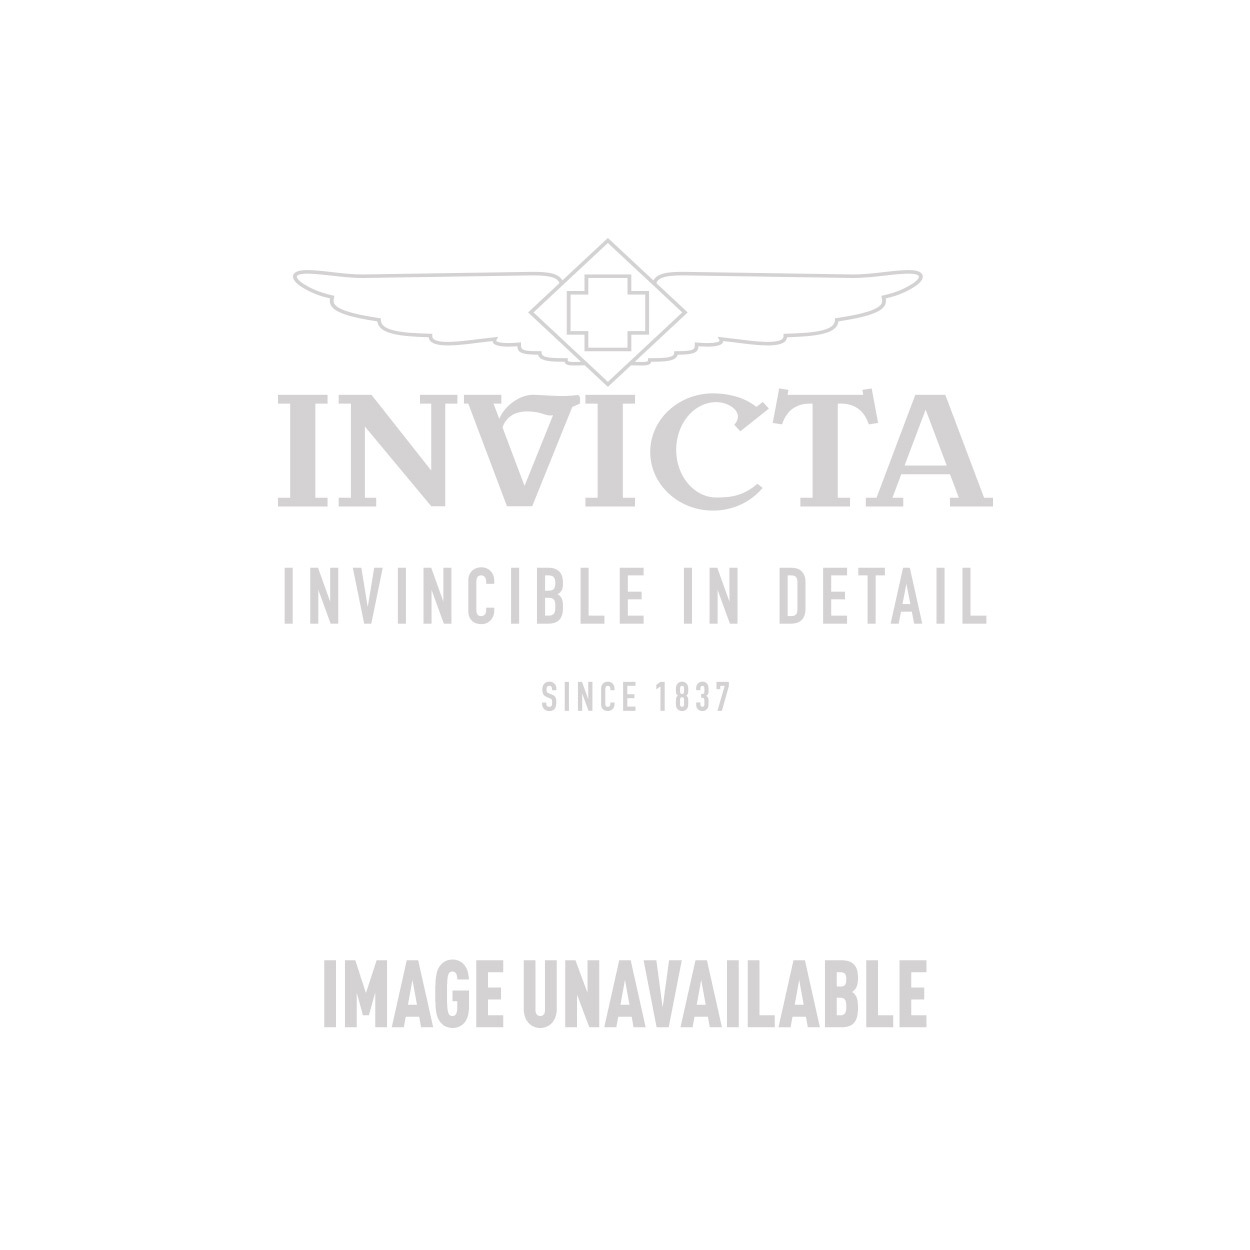 Invicta Akula Swiss Made Quartz Watch - Stainless Steel case with Black, Brown, White tone Leather band - Model 15934